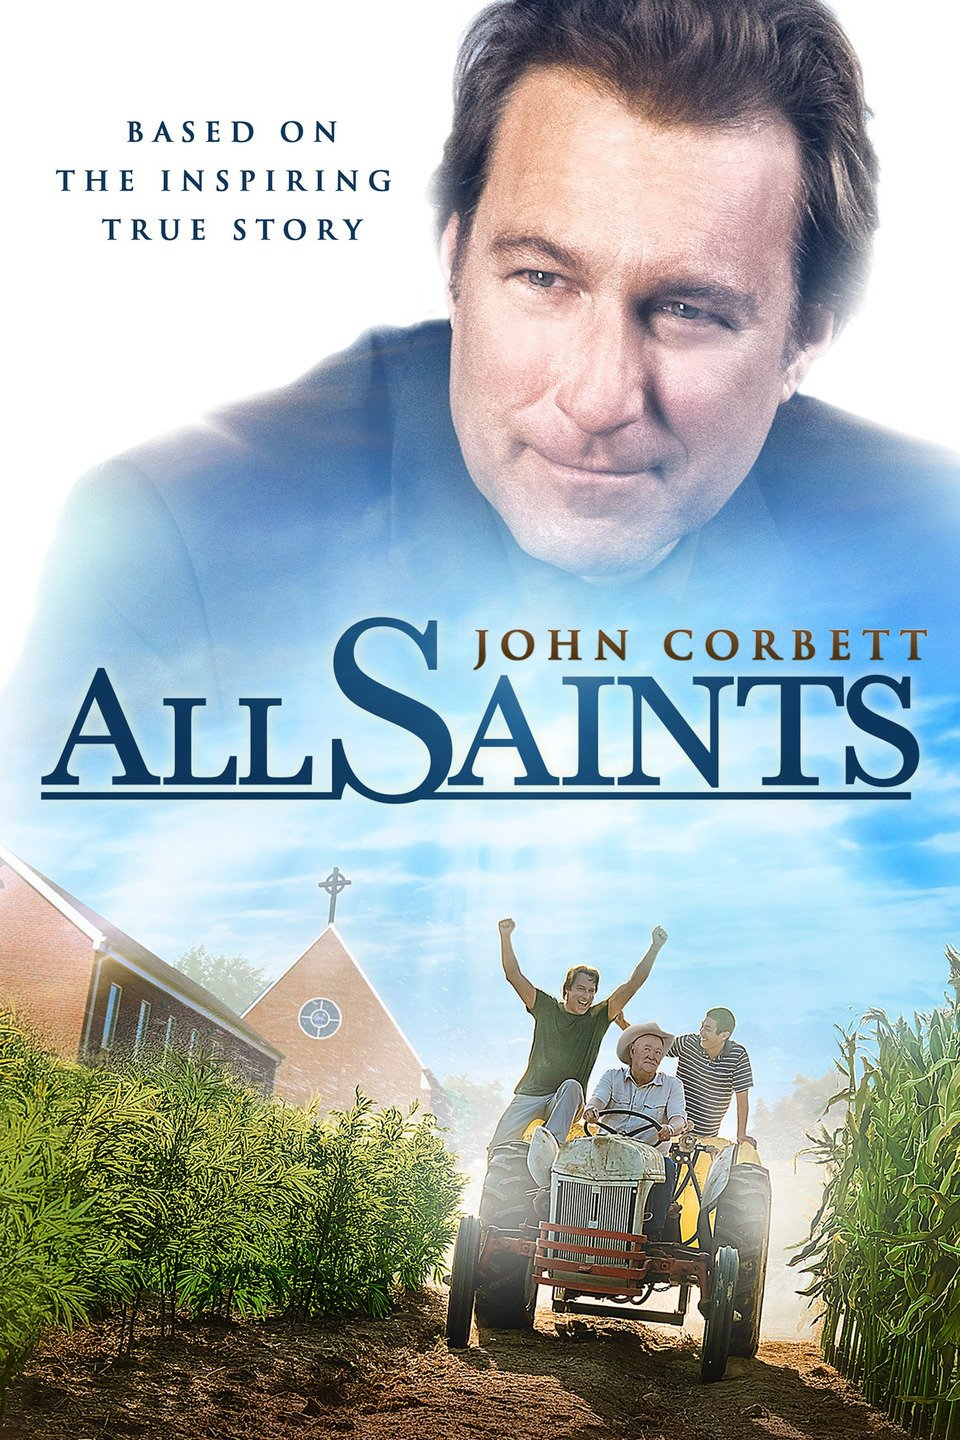 All Saints    Part 1 - March 13    Part 2 - March 20   Michael Spurlock decides to trade in his corporate sales career to become a pastor. Unfortunately, his first assignment is to close a country church and sell the prime piece of land where it sits. He soon has a change of heart when the church starts to welcome refugees from Burma. Spurlock now findshimself working with the refugees to turn the land into a working farm to pay the church's bills.